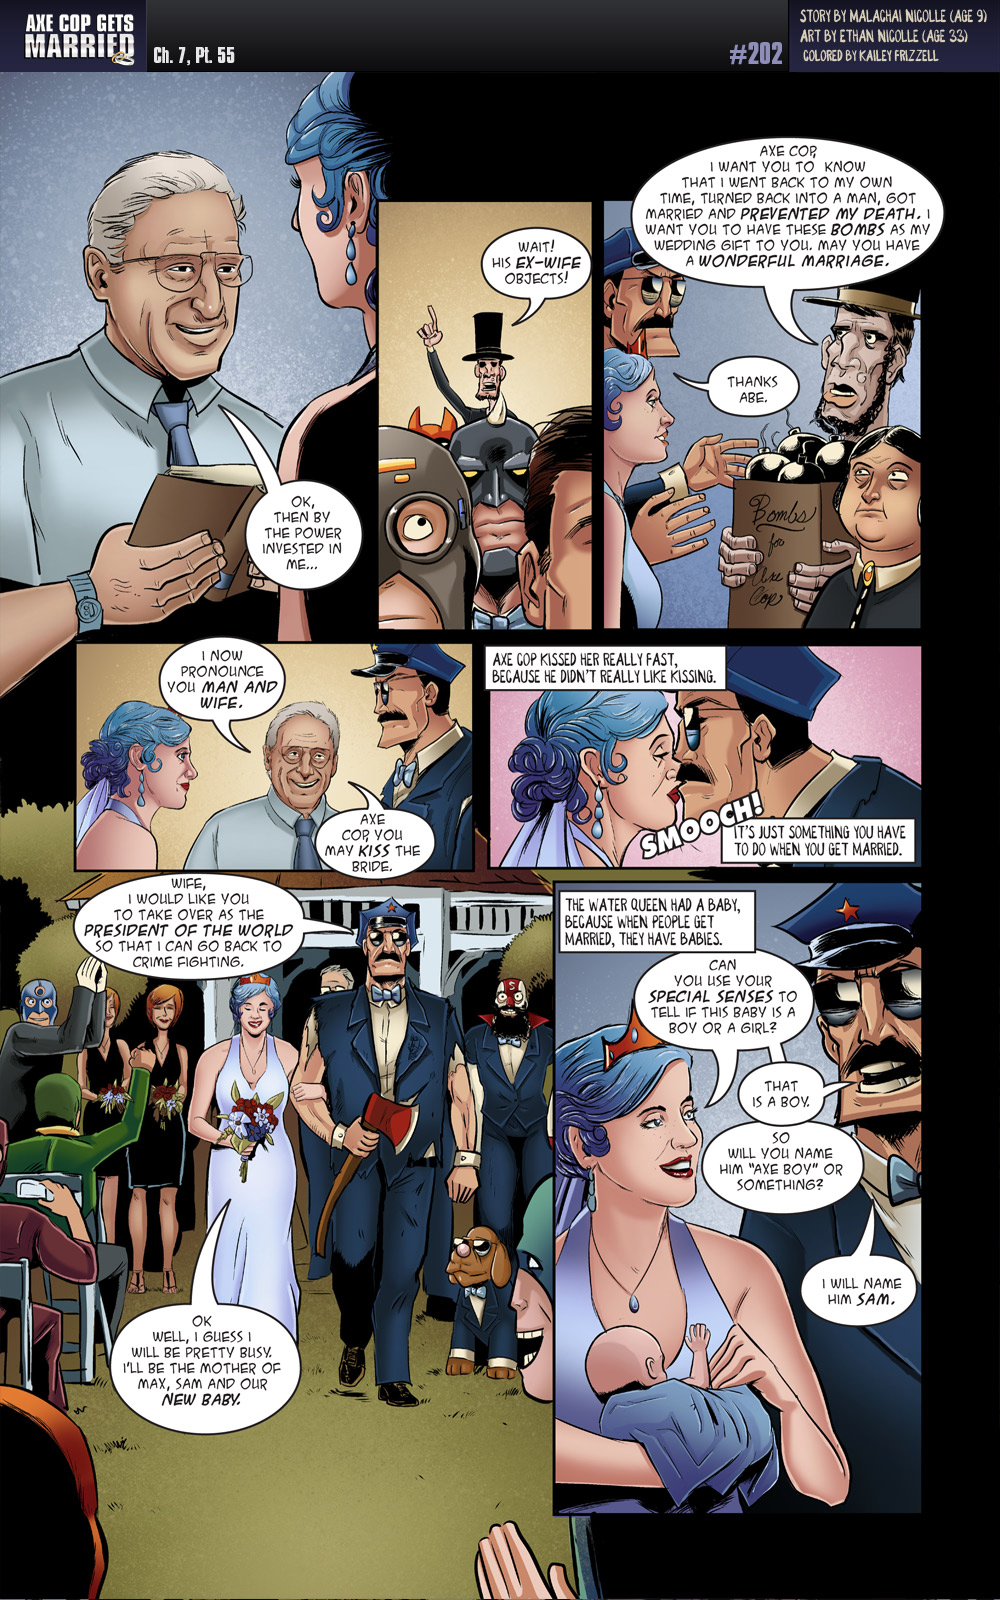 All the images of the Water Queen are taken from pictures of my wife the day we got married.  In the picture where they are walking down the aisle, I just drew Axe Cop over myself.   Those wedding pictures came in very handy.